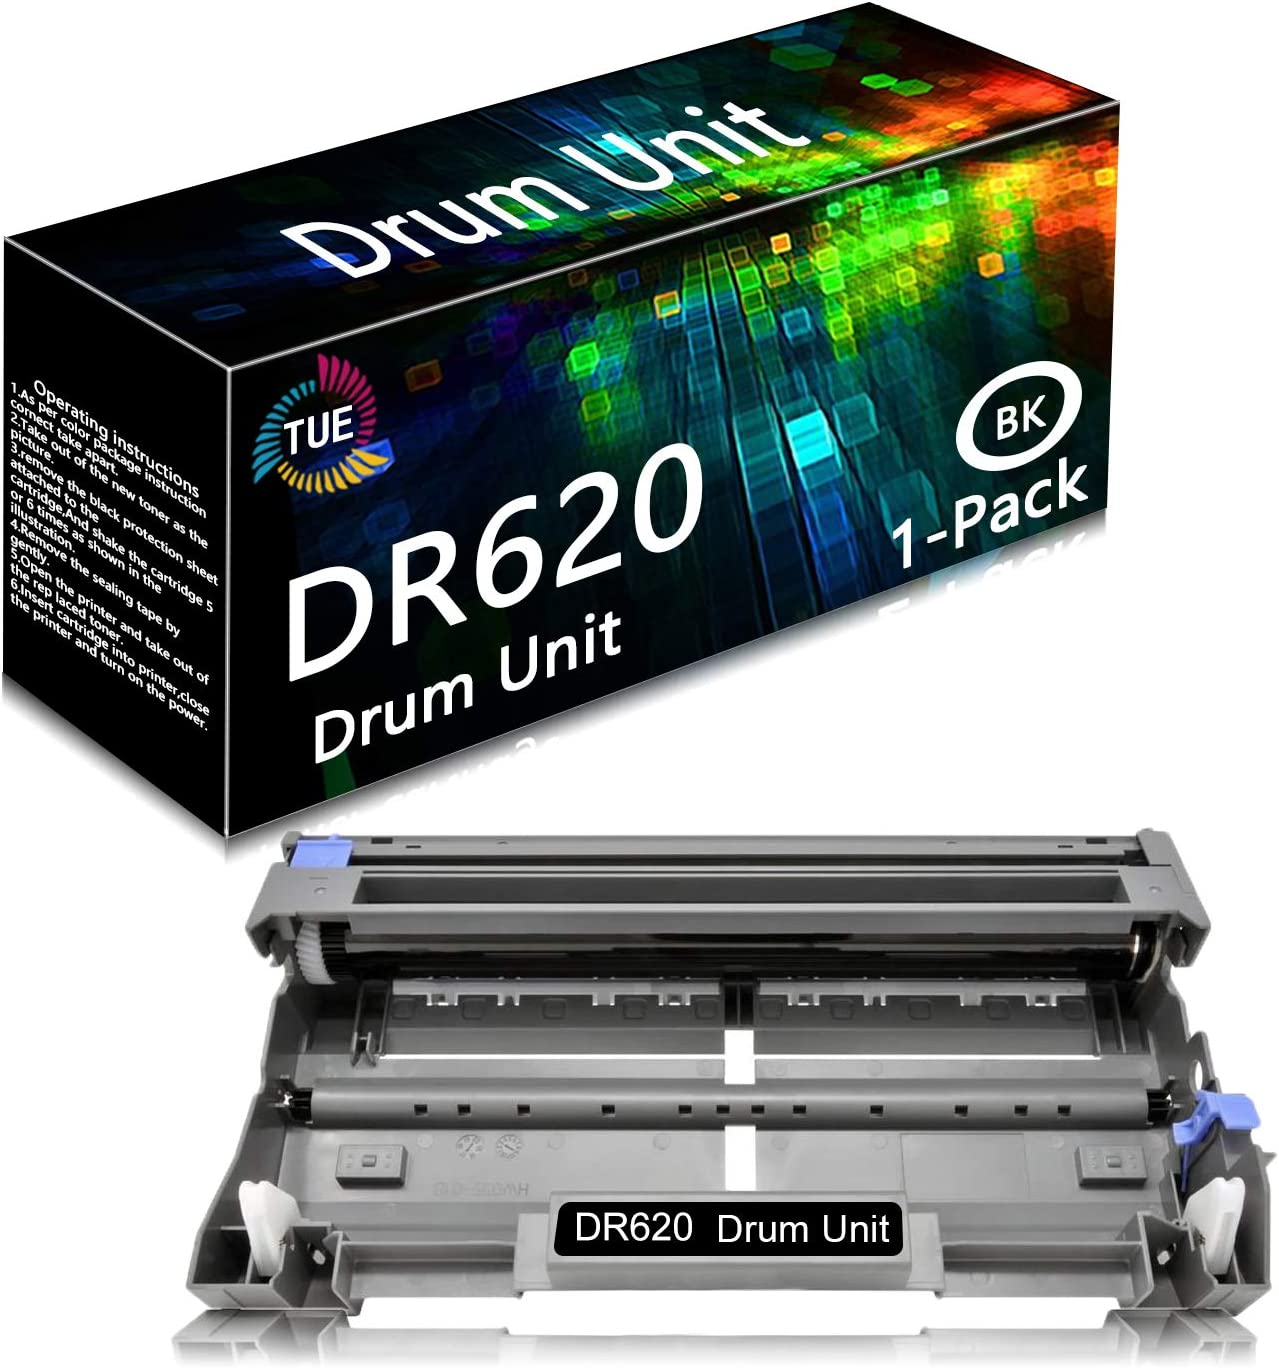 DR620 DR-620 Black 1 Pack Compatible Drum Unit Replacement for Brother HL-5280DW HL-5350DN HL-5370DWT HL-5380DN MFC-8470DN MFC-8880DN DCP-8080DN DCP-8085DN Printer, Sold by TueInk